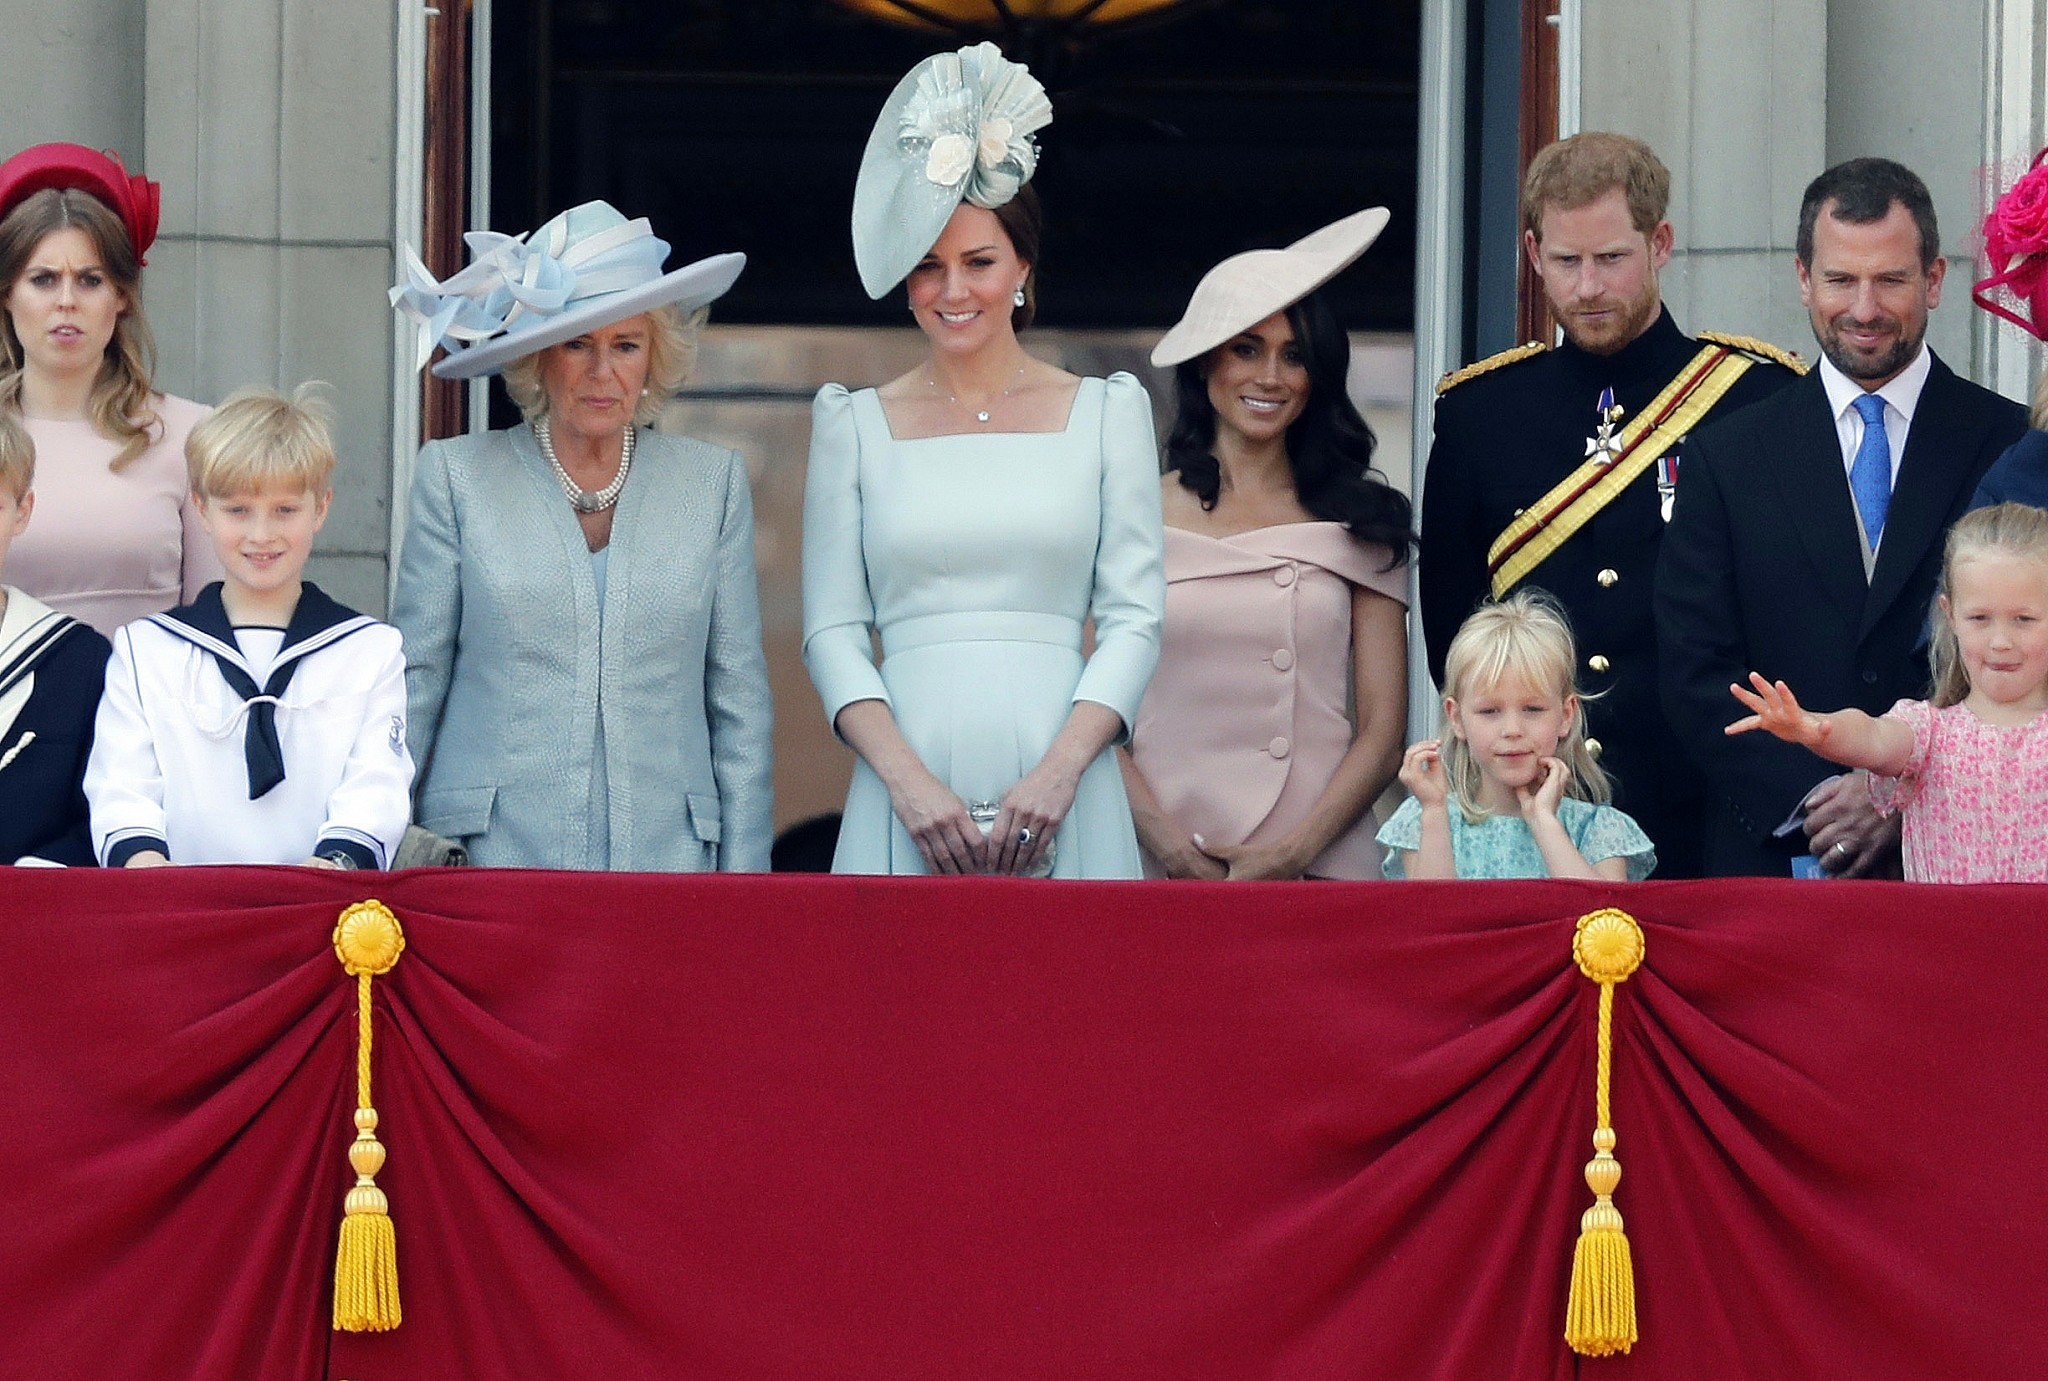 With Meghan Markle's first balcony appearance, her new royal life truly begins